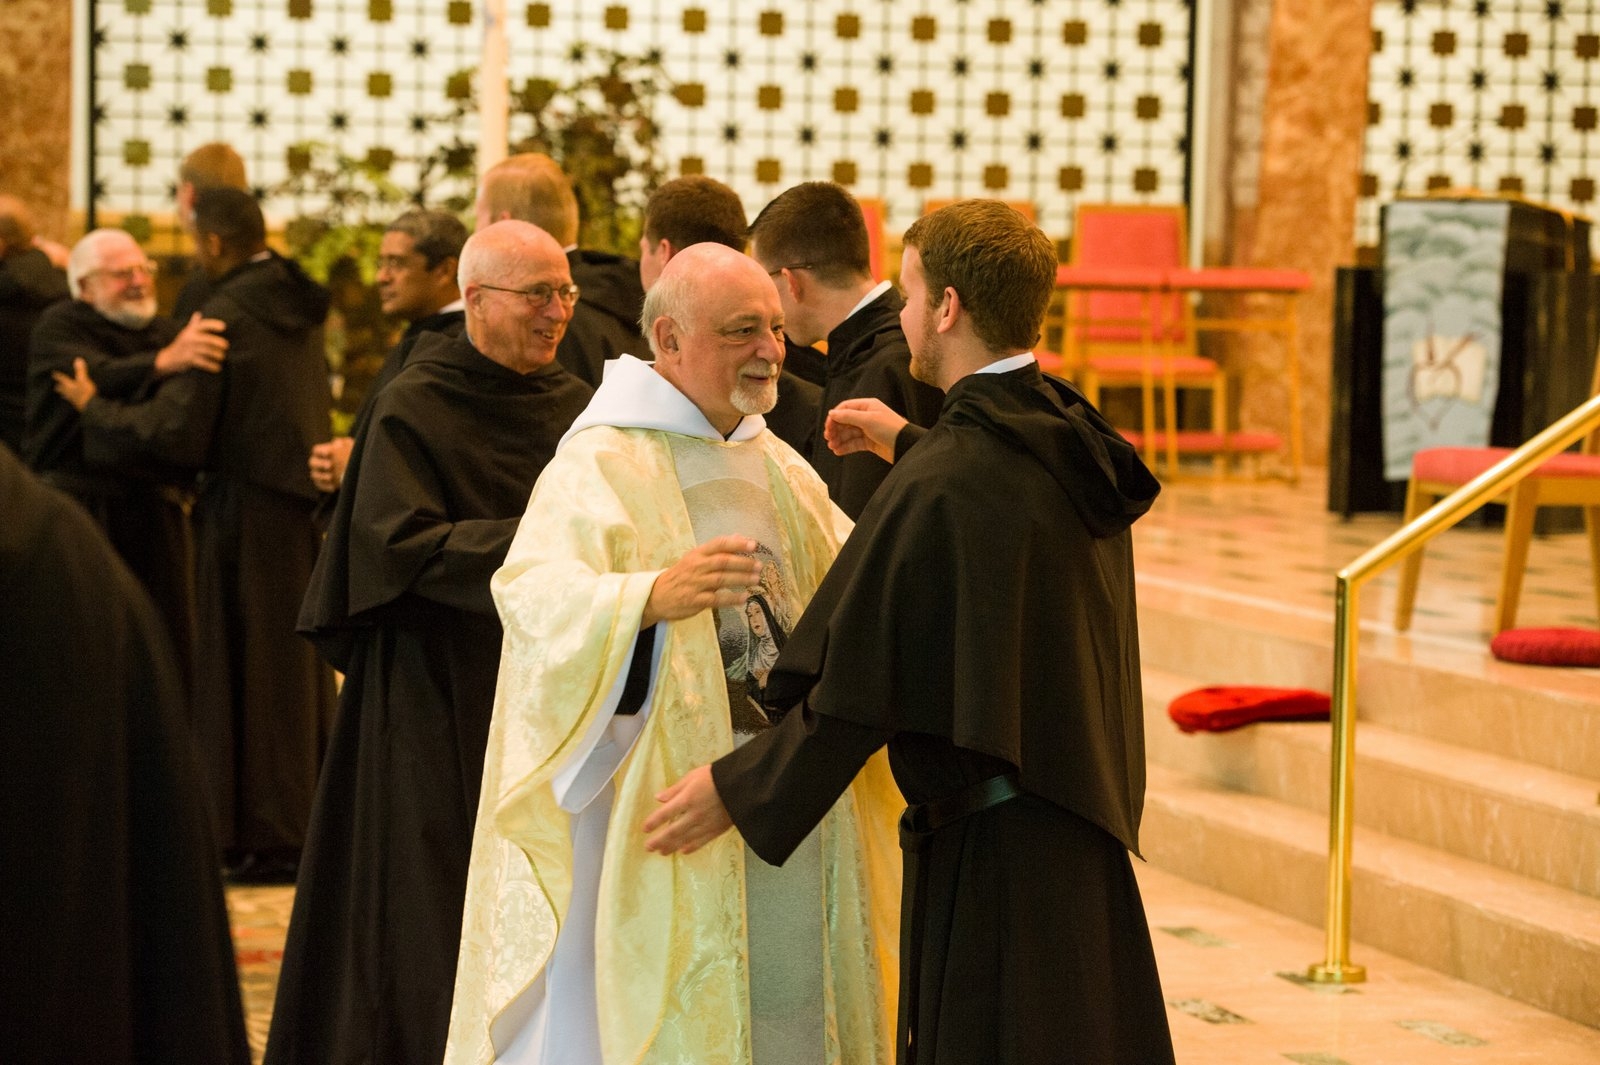 Friars then welcome newly professed with embrace